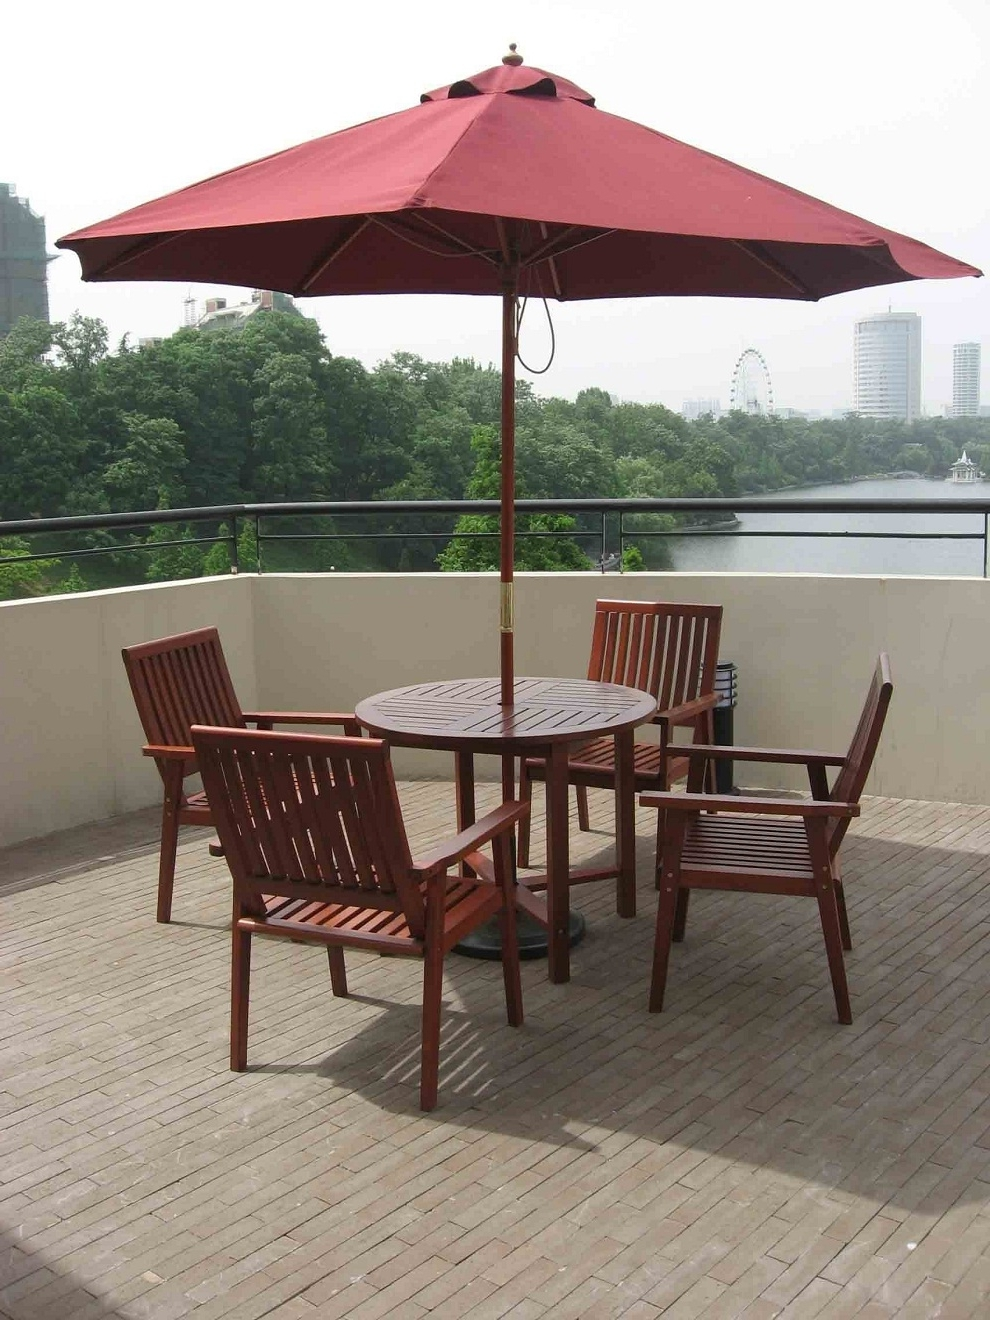 Patio Tables With Umbrellas With Recent Patio Outdooratio Table Chairs And Umbrellas Umbrella Set Restaurant (View 16 of 20)